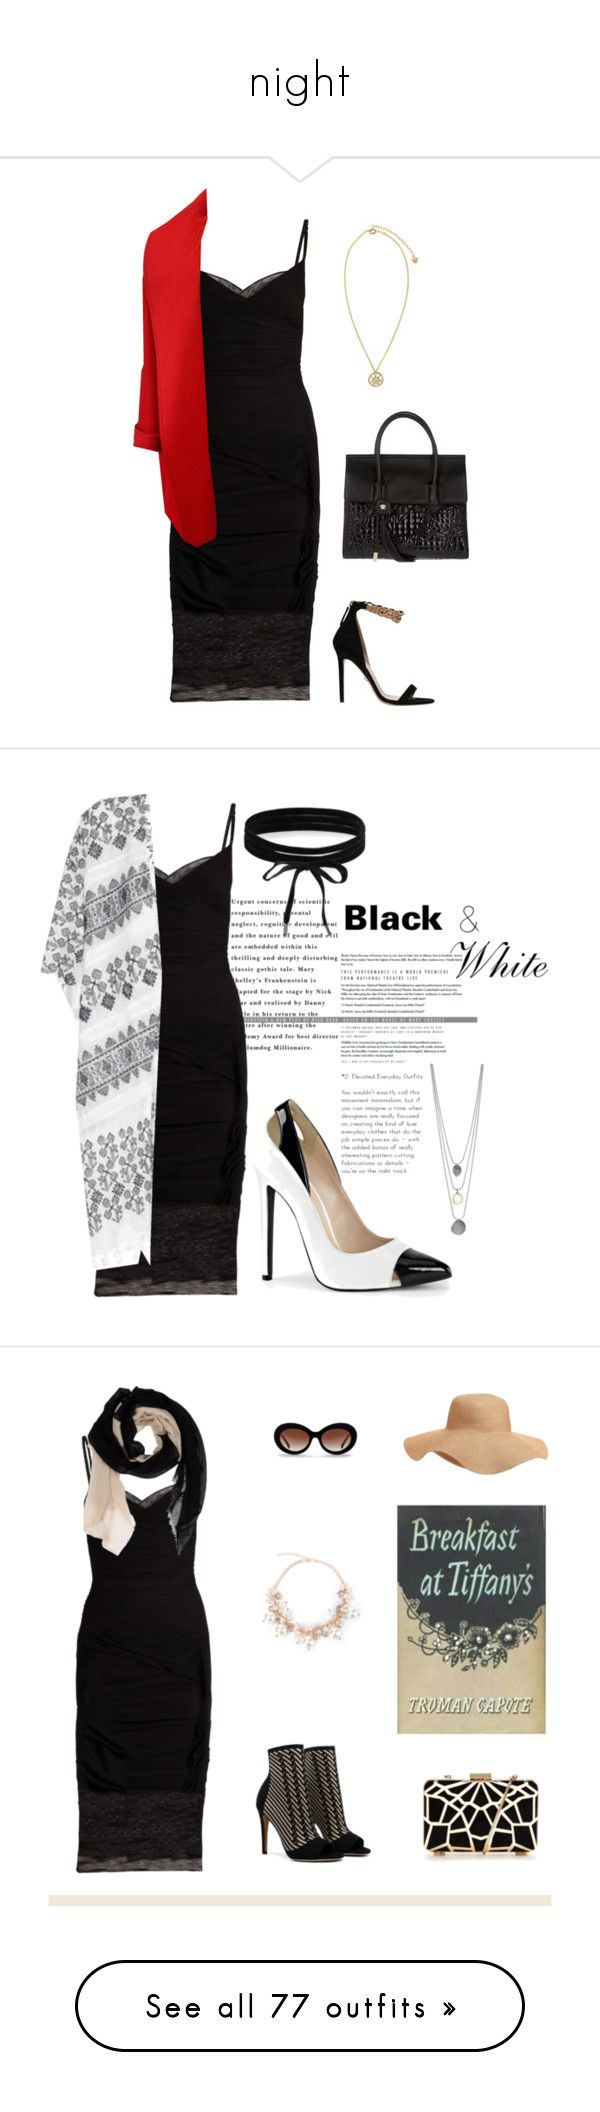 """""""night"""" by kittystar69 ❤ liked on Polyvore featuring Versace, Velvet, Boohoo, white, black, dress, fancy, AbbiAlister, DESTIN and Old Navy"""